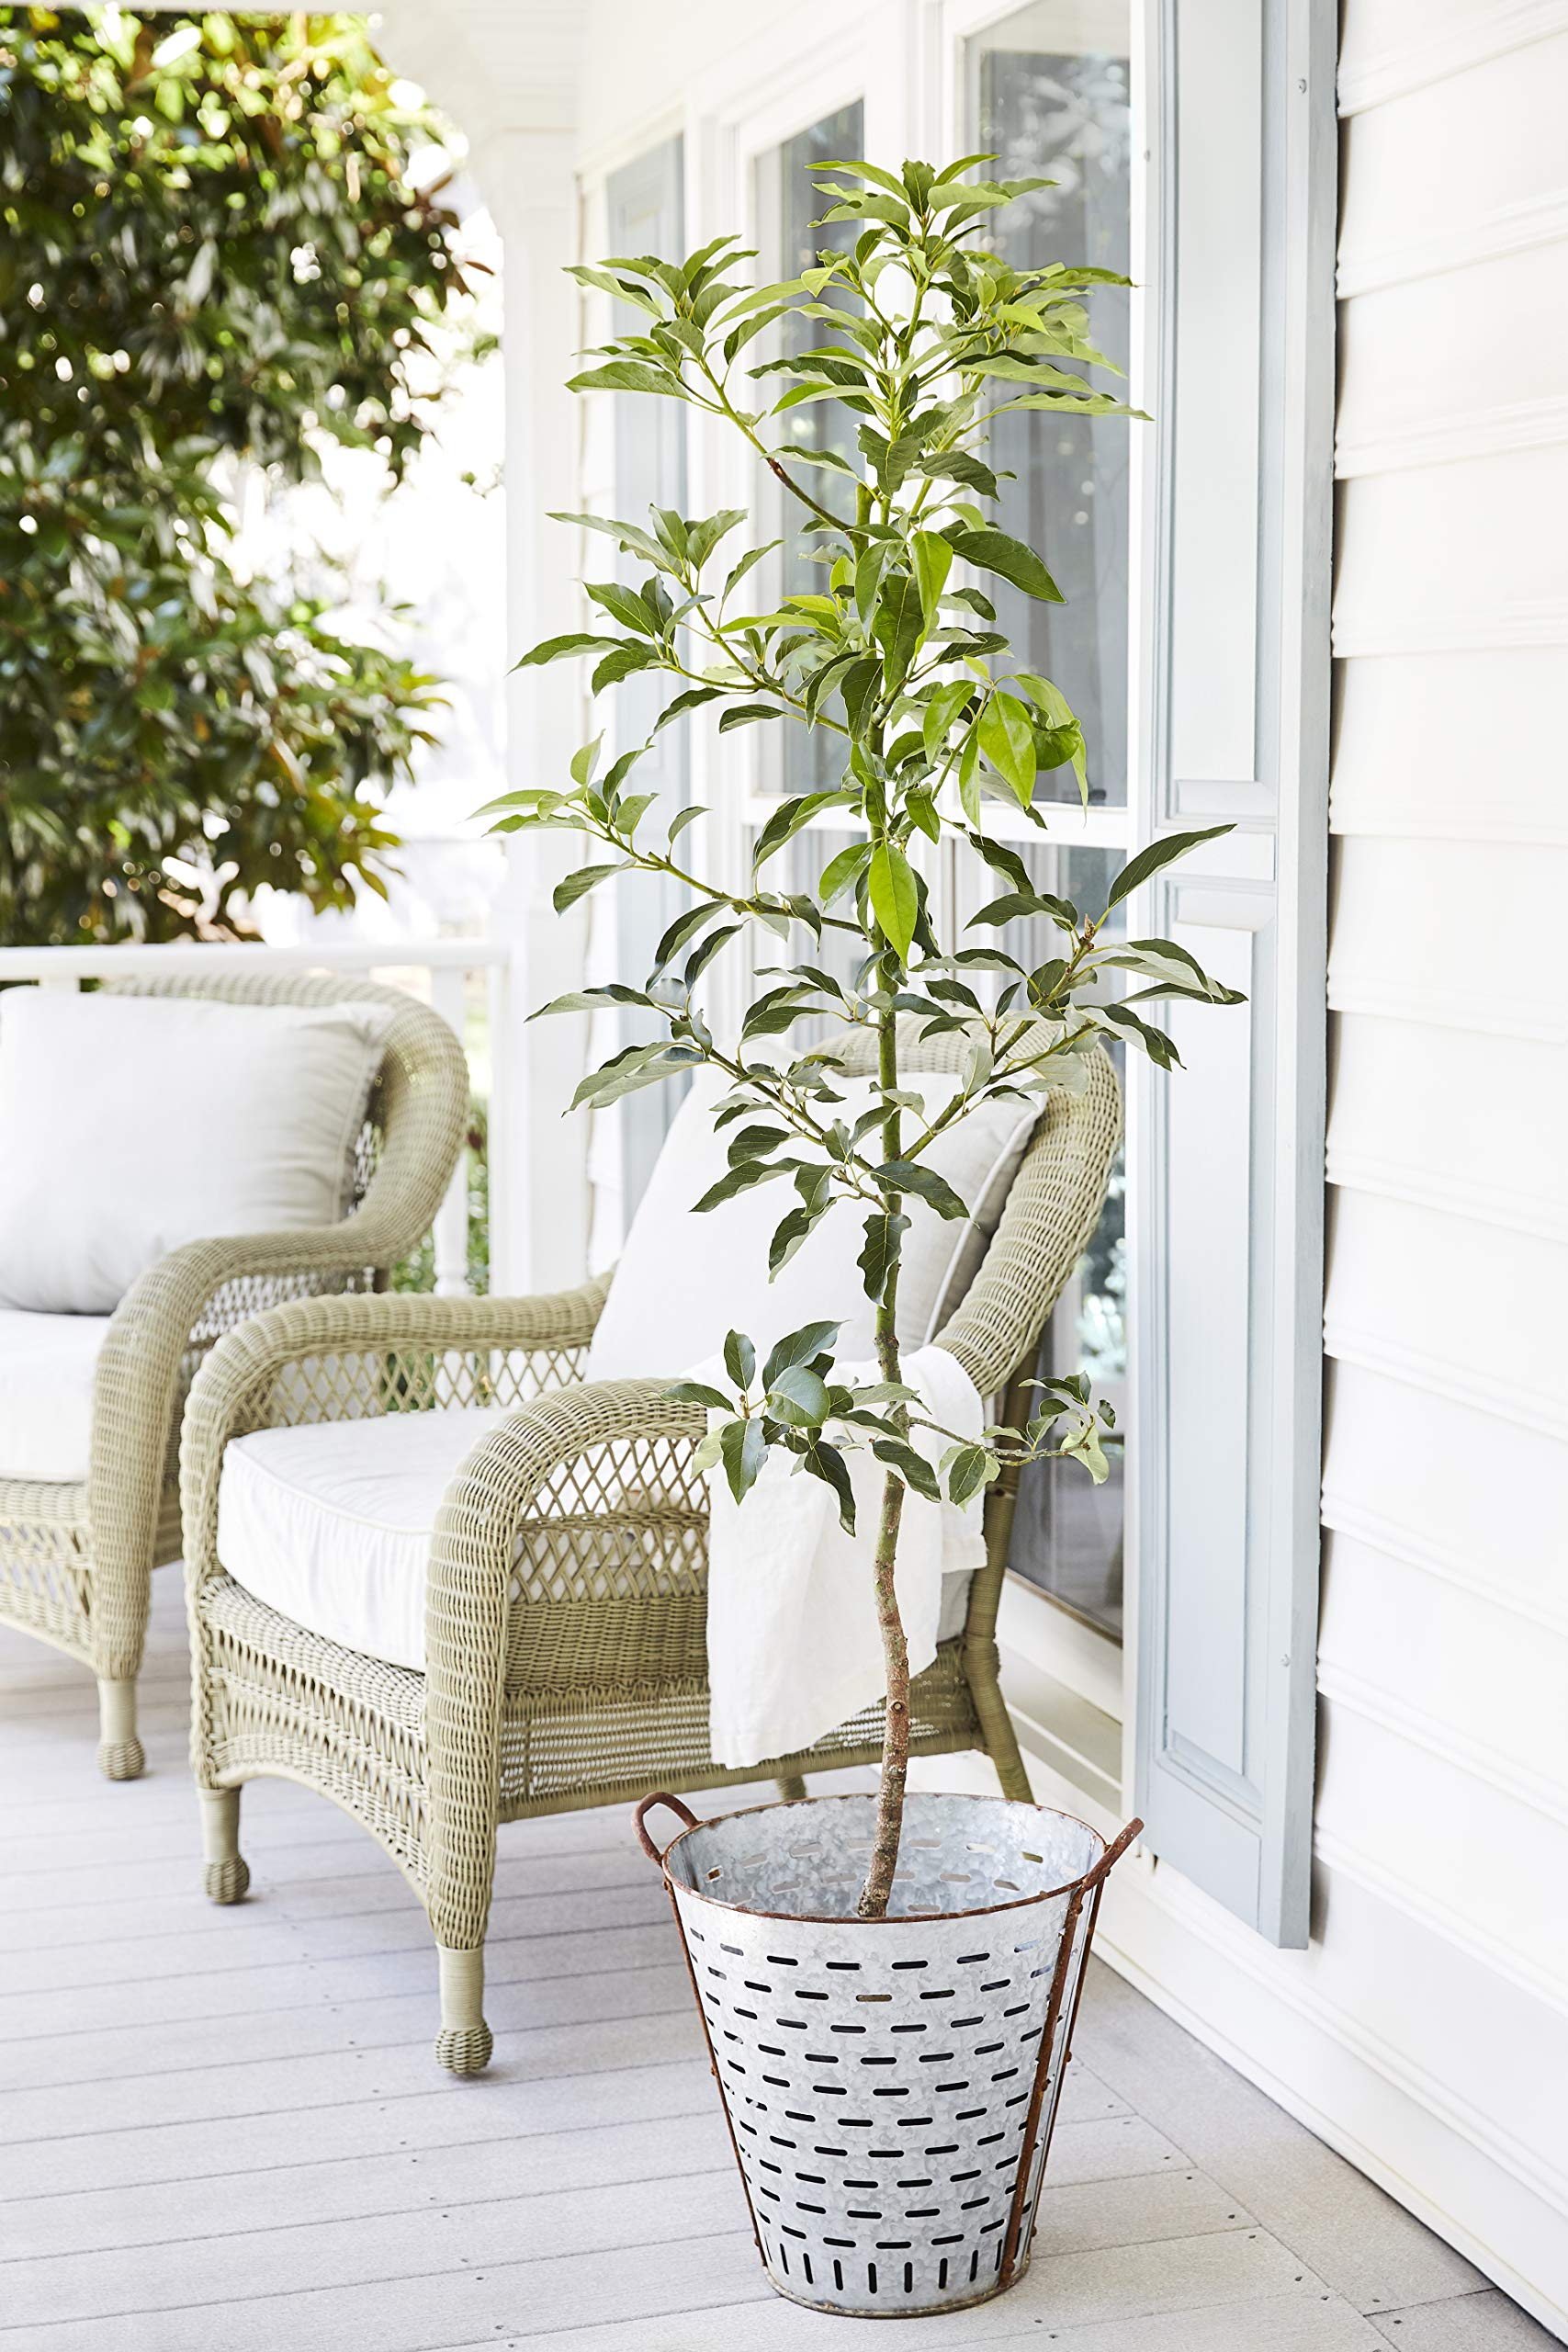 Cold Hardy Avocado Tree - (Mexicola Grande) - Get Delicious Avocados Year Round from This Fruit Tree by Brighter Blooms Nursery - 3-4 ft. by Brighter Blooms (Image #2)